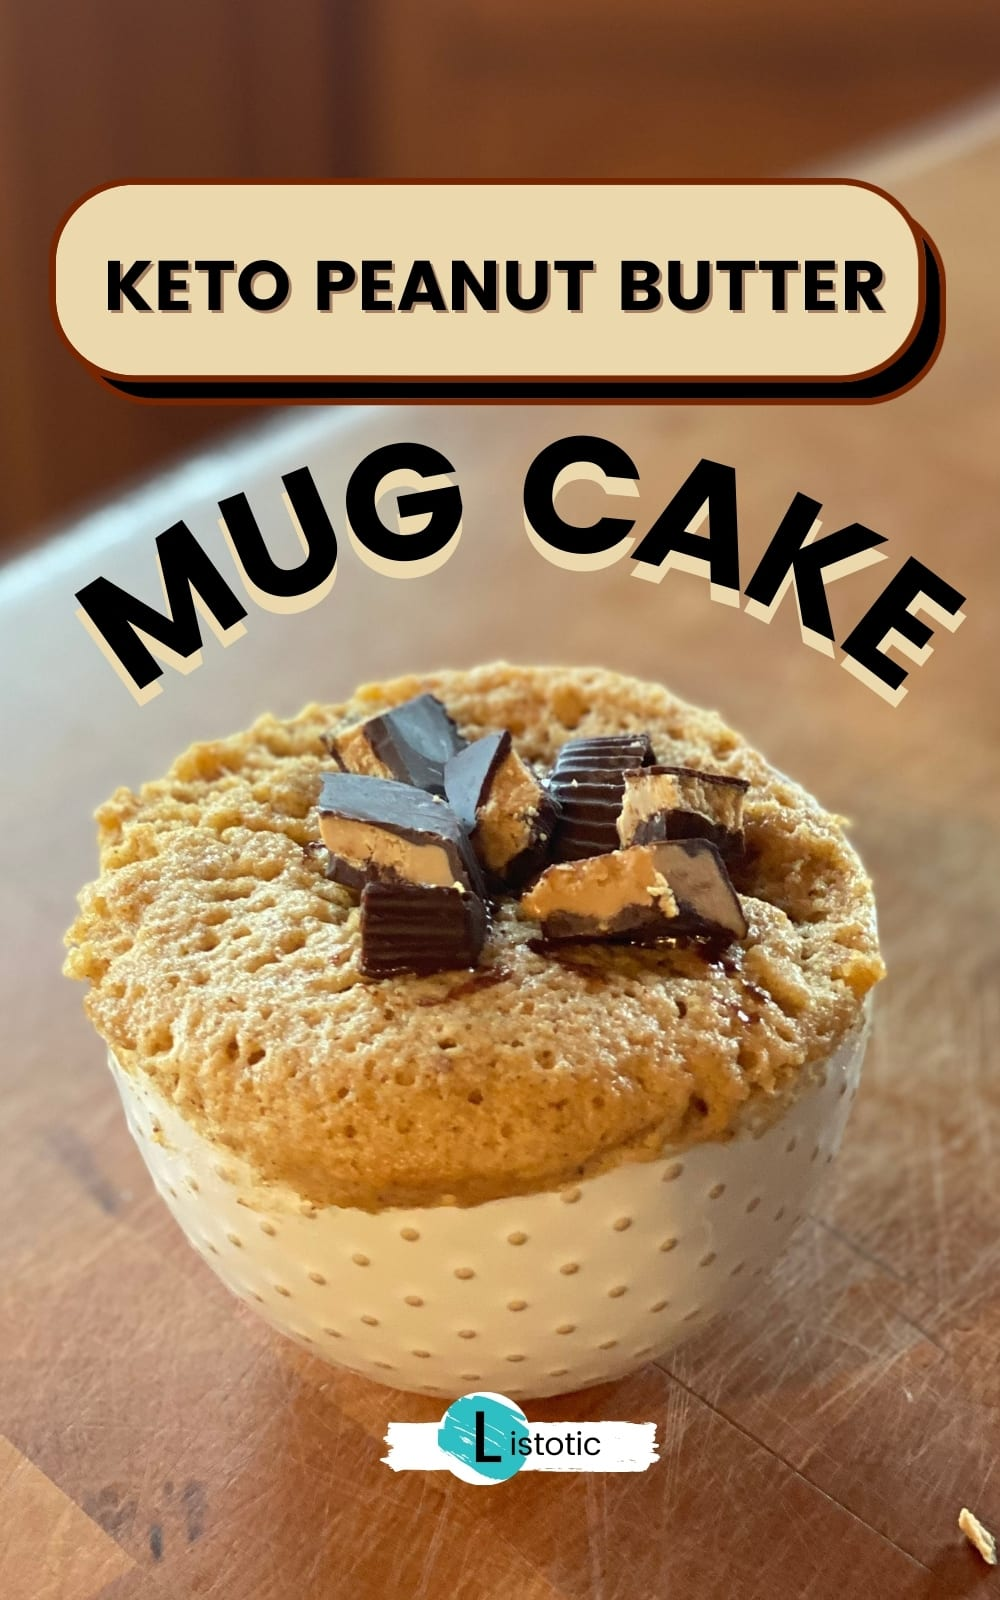 Keto mug cake dessert with peanut butter cup topping